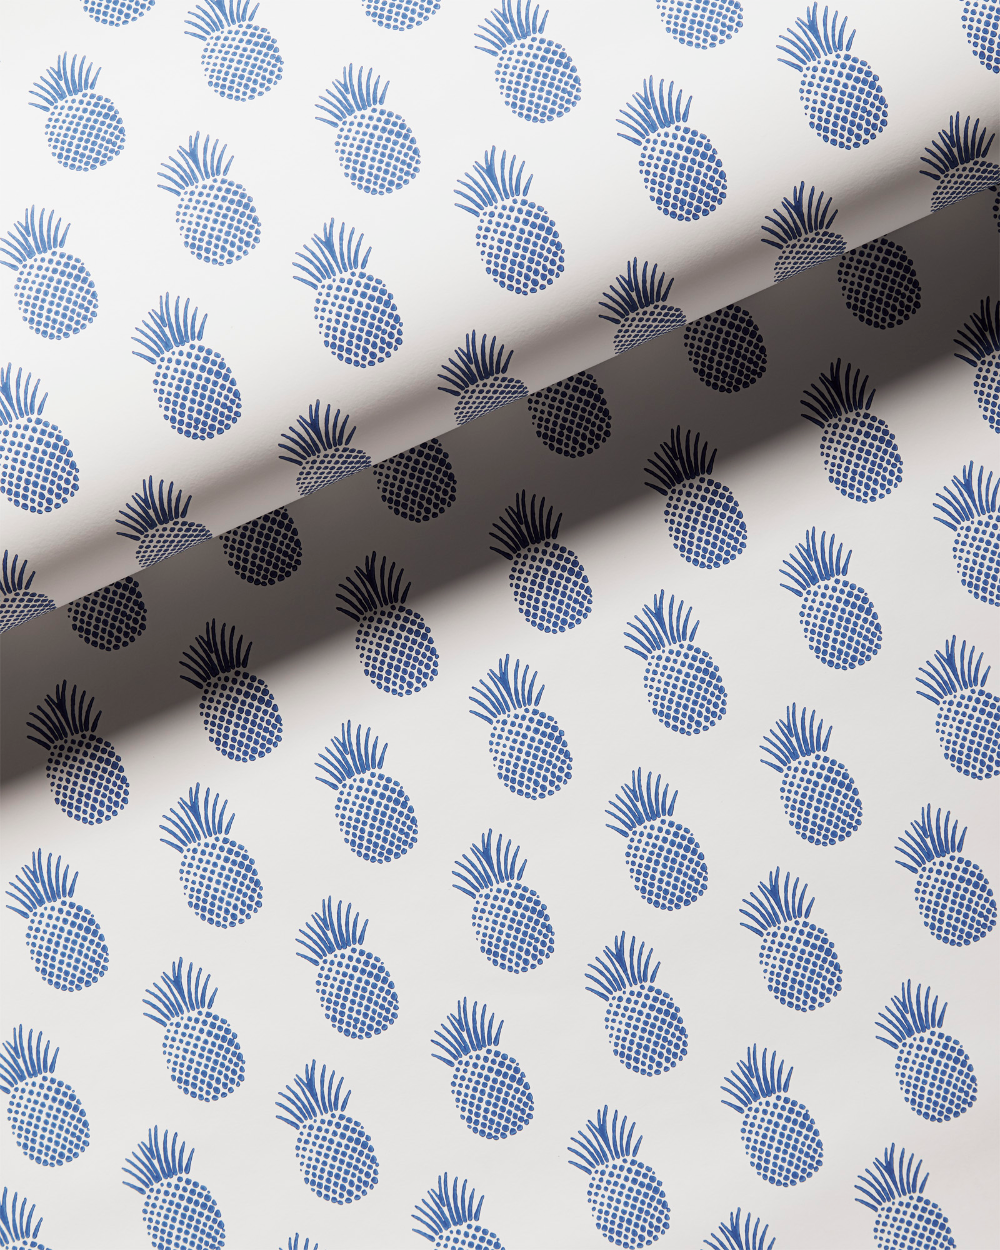 Isla Wallpaper In 2021 Serena And Lily Wallpaper Blue And White Wallpaper Pineapple Wallpaper